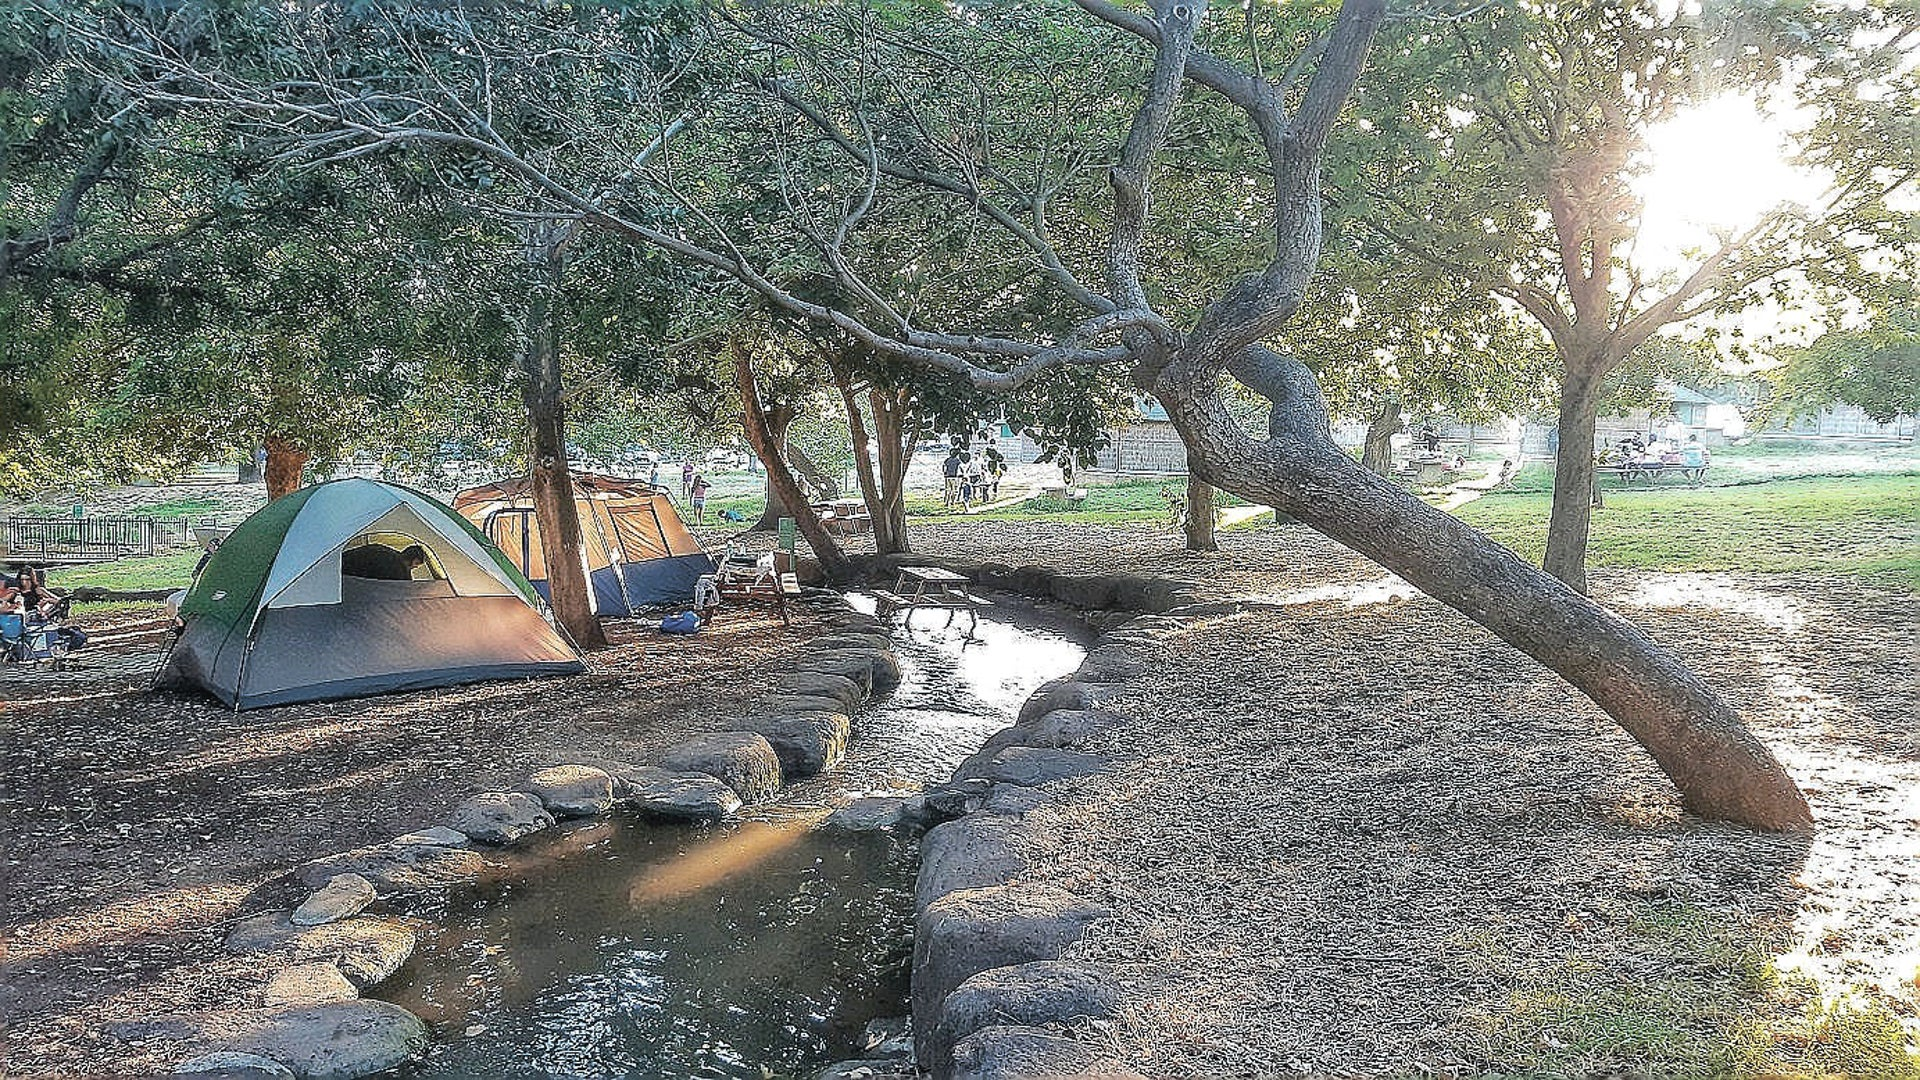 A camping site at the Hurshat Tal nature reserve.